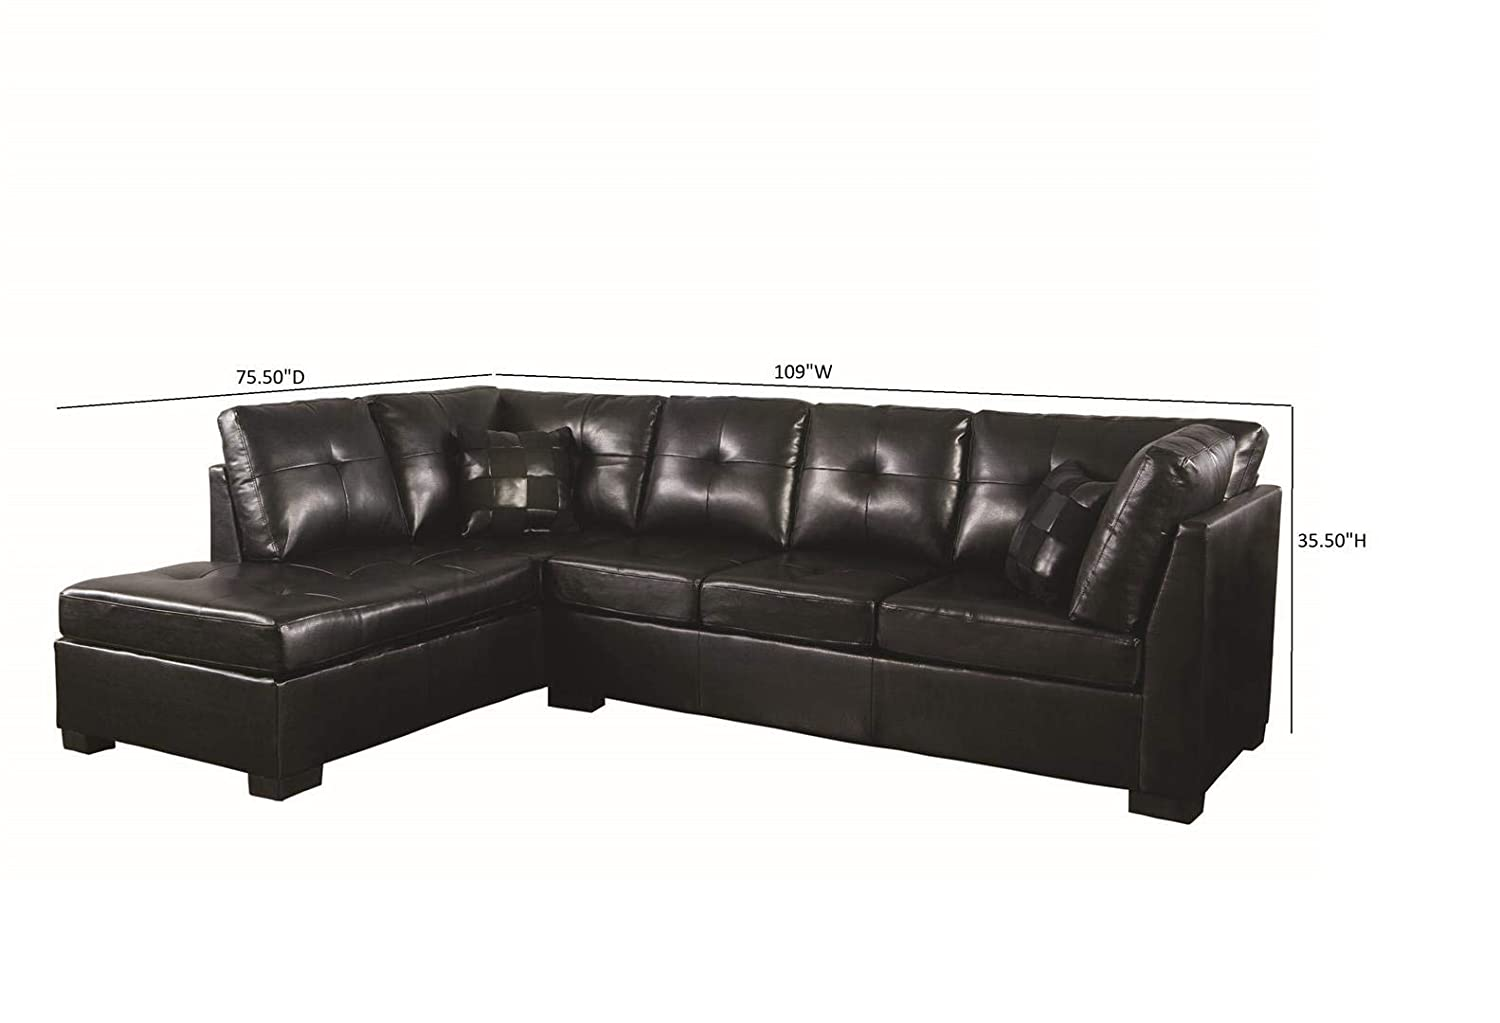 Marvelous Darie Sectional Sofa With Left Side Chaise Black Pabps2019 Chair Design Images Pabps2019Com